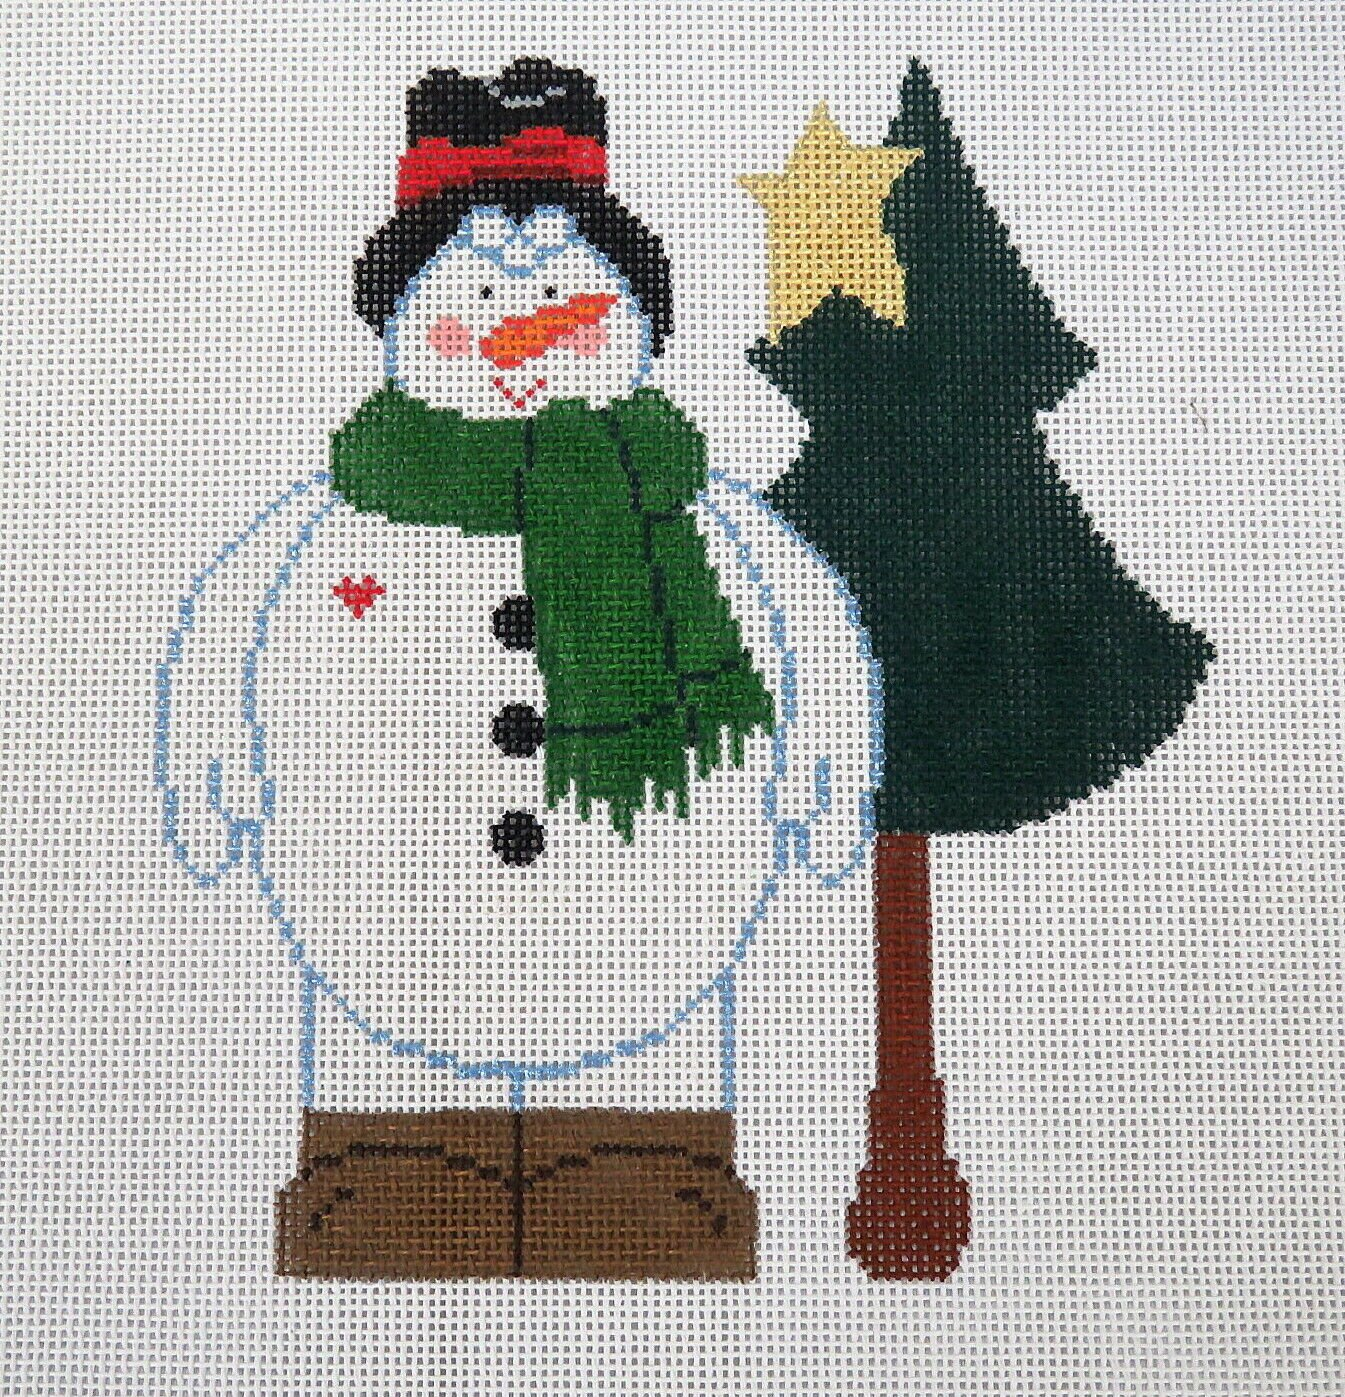 Snowman with Tree - 18M